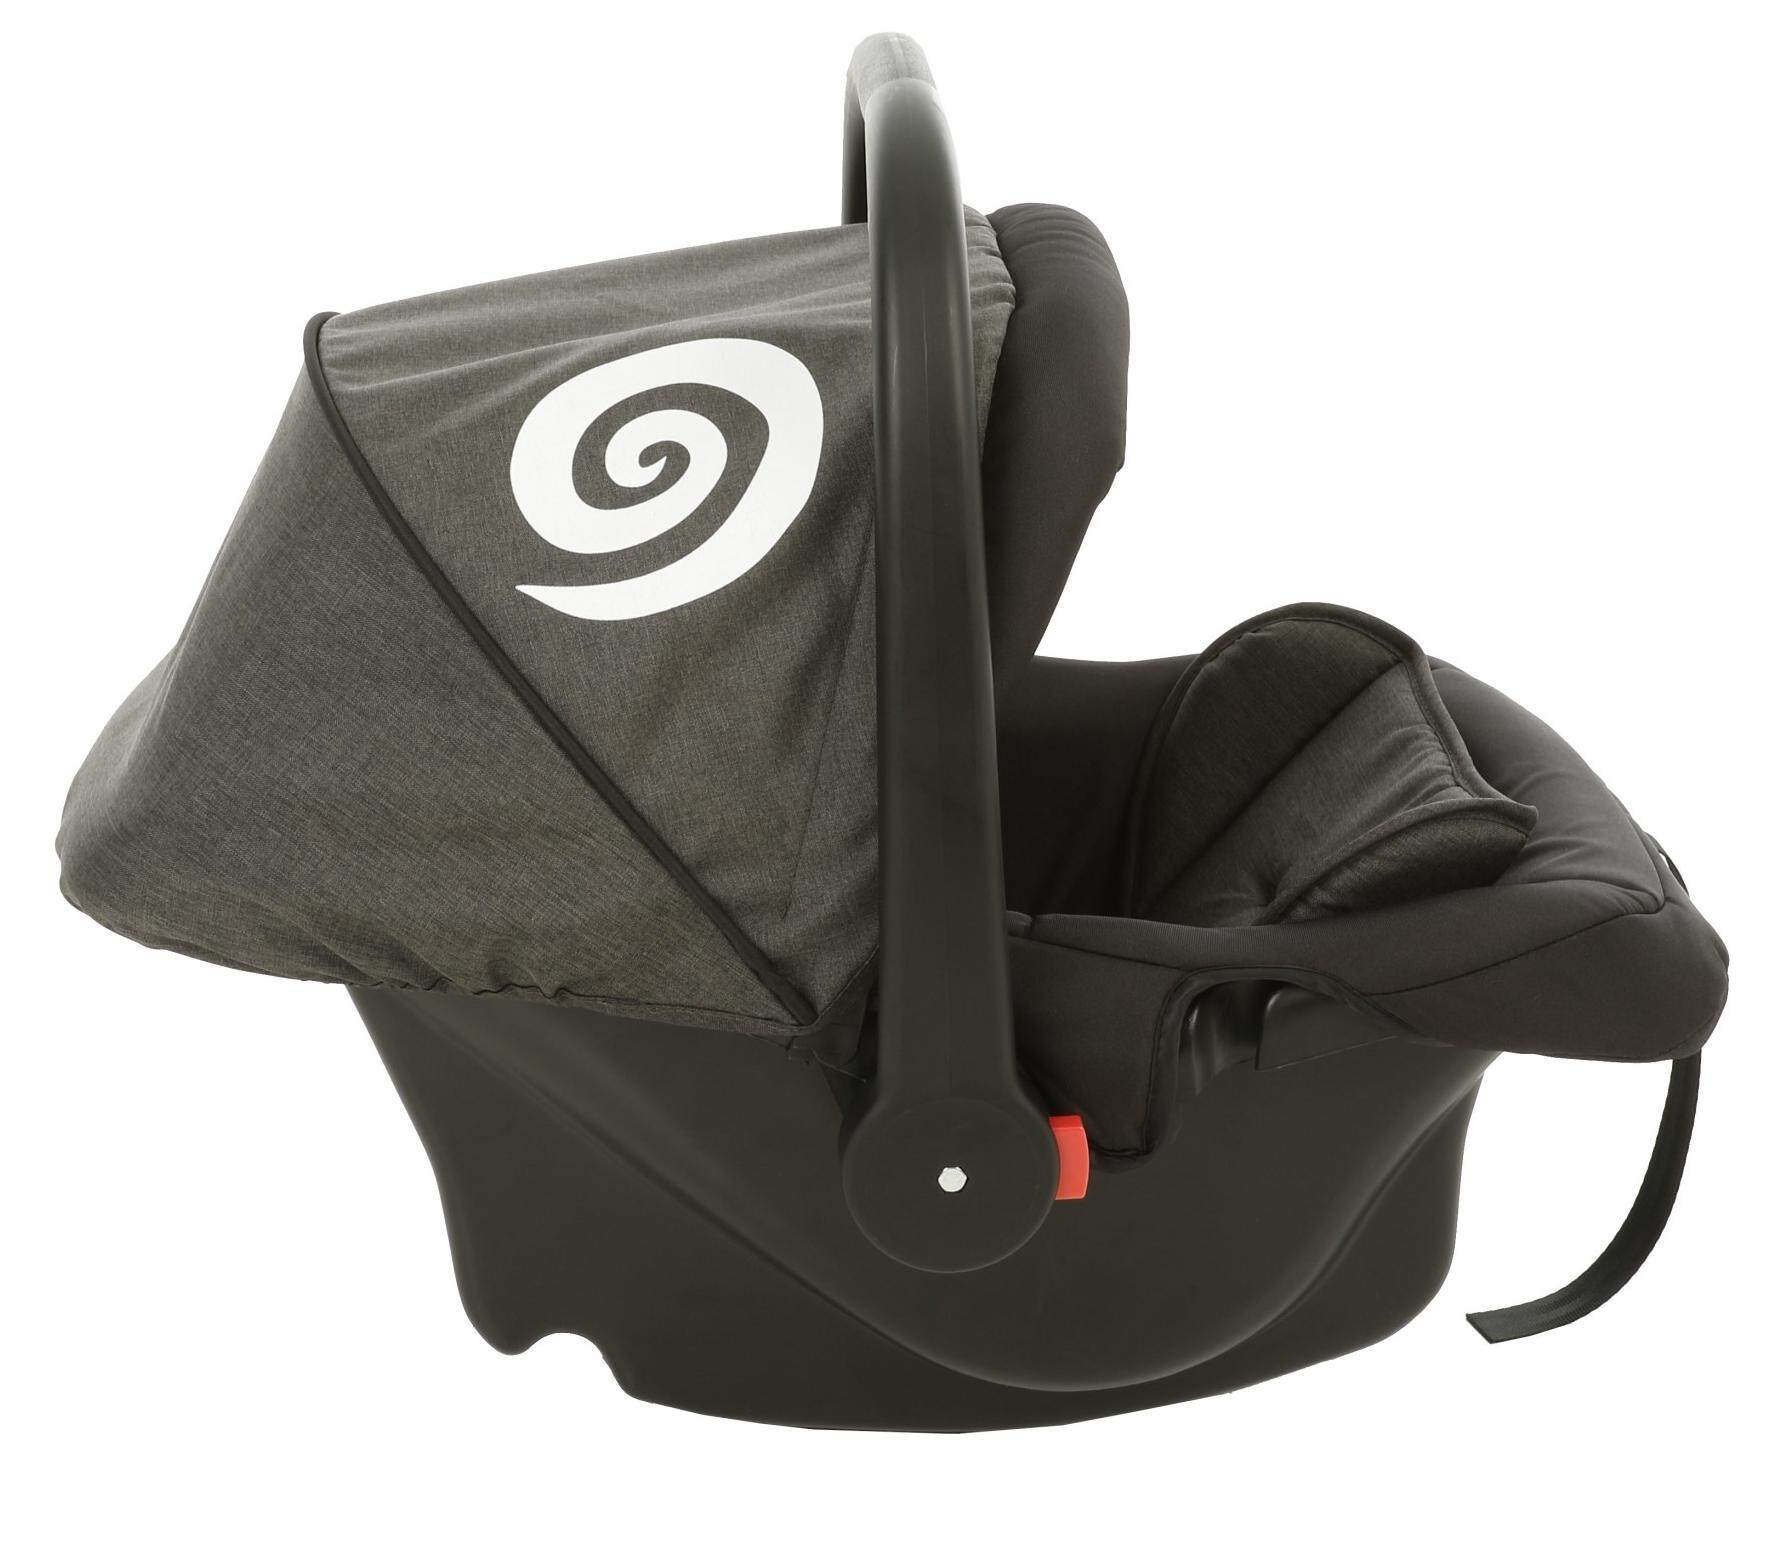 Akarana Baby Koru Car Seat Carrier Koru Black